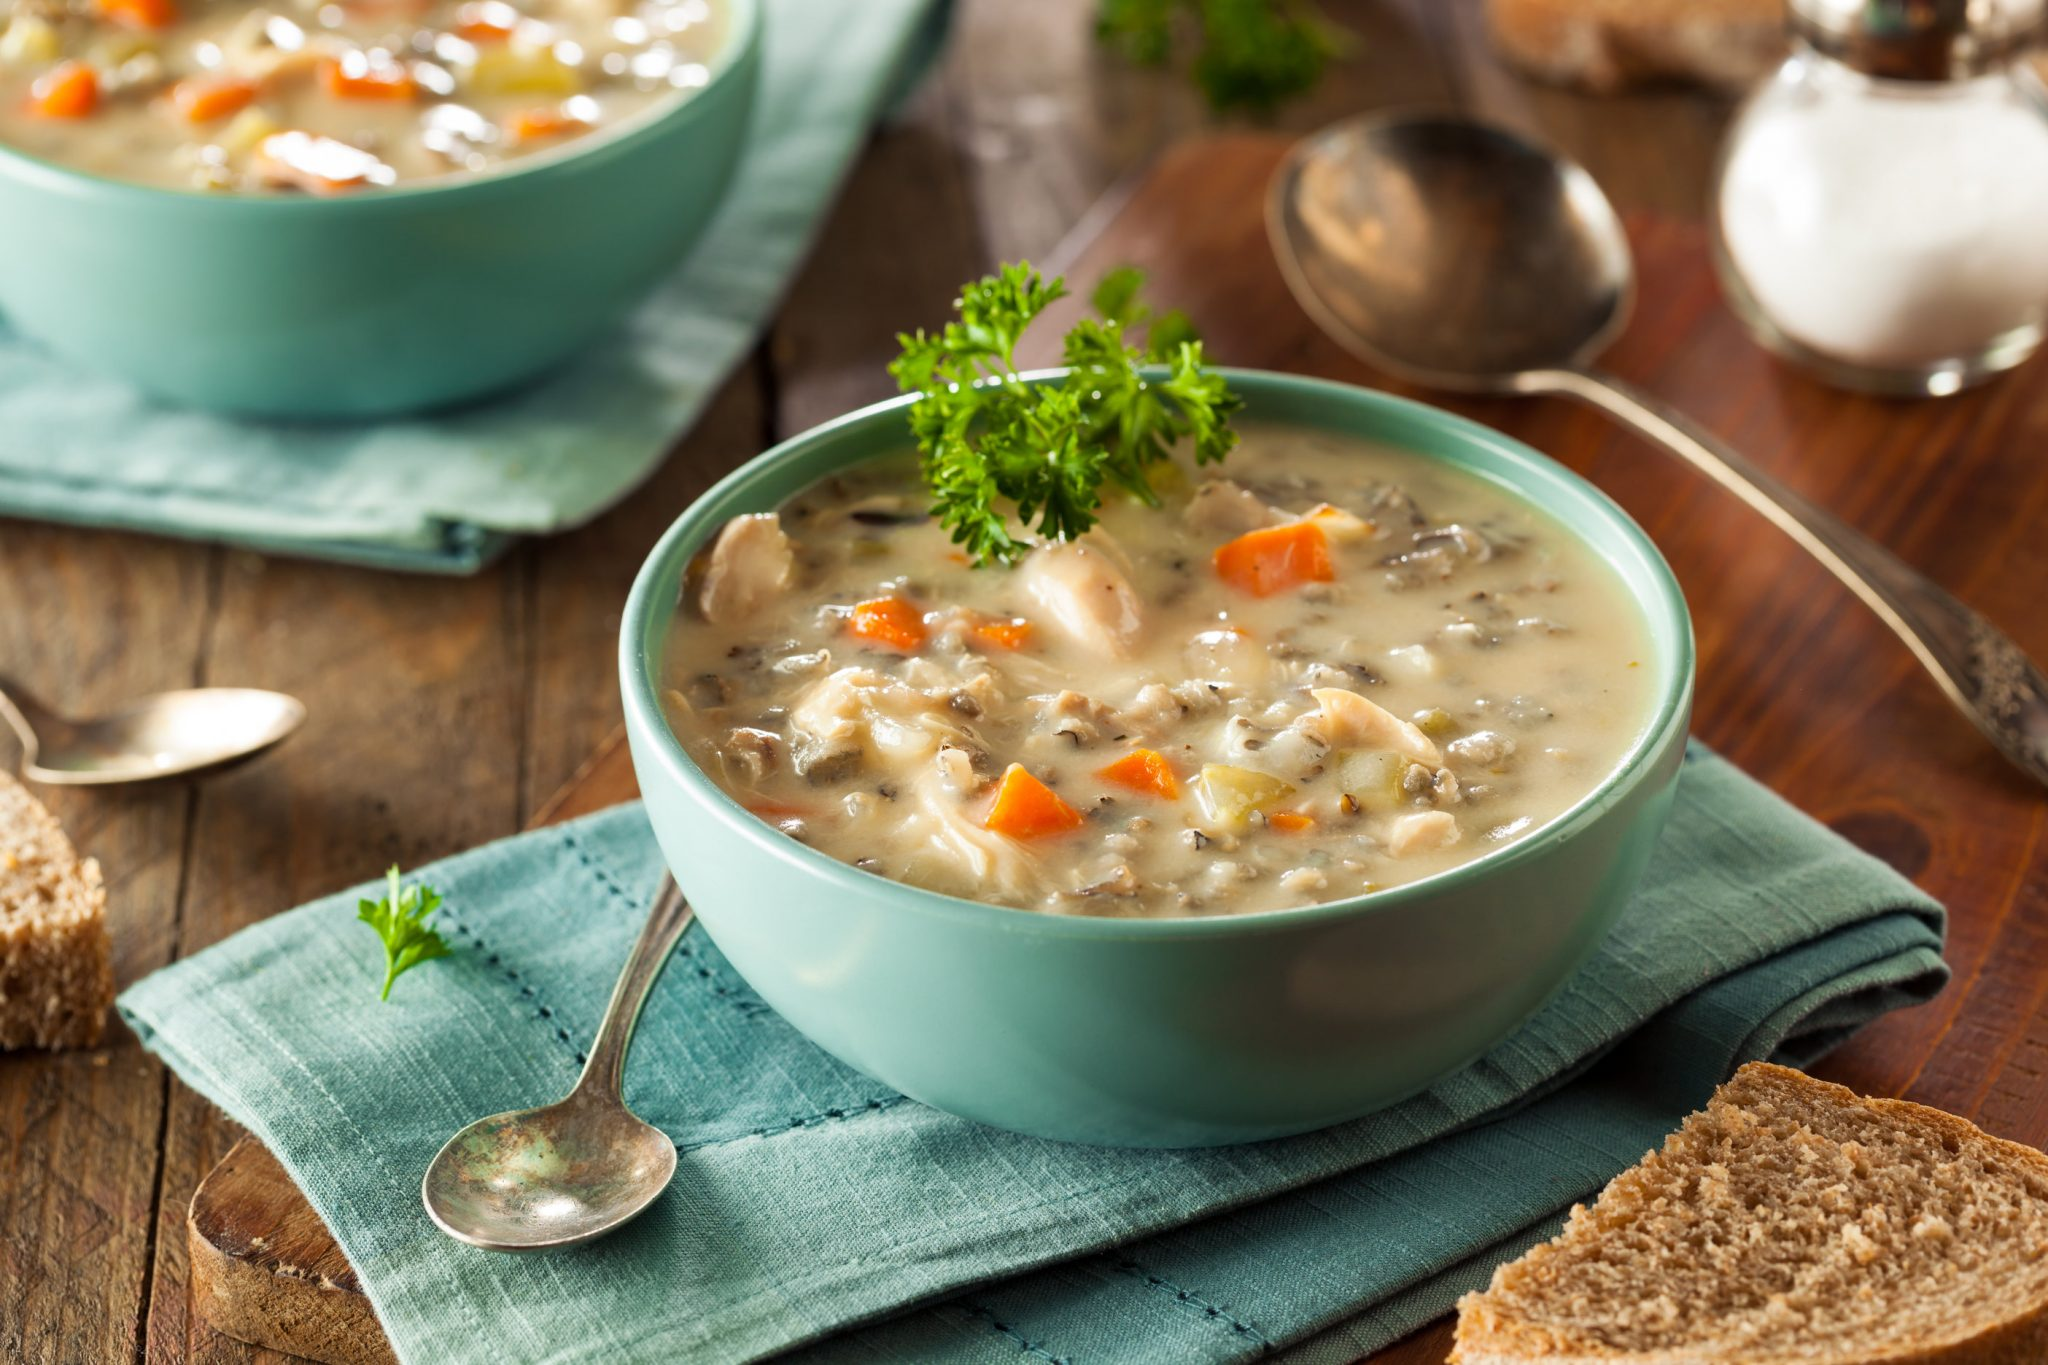 Bowl of Healthy Creamy Turkey Wild Rice Soup